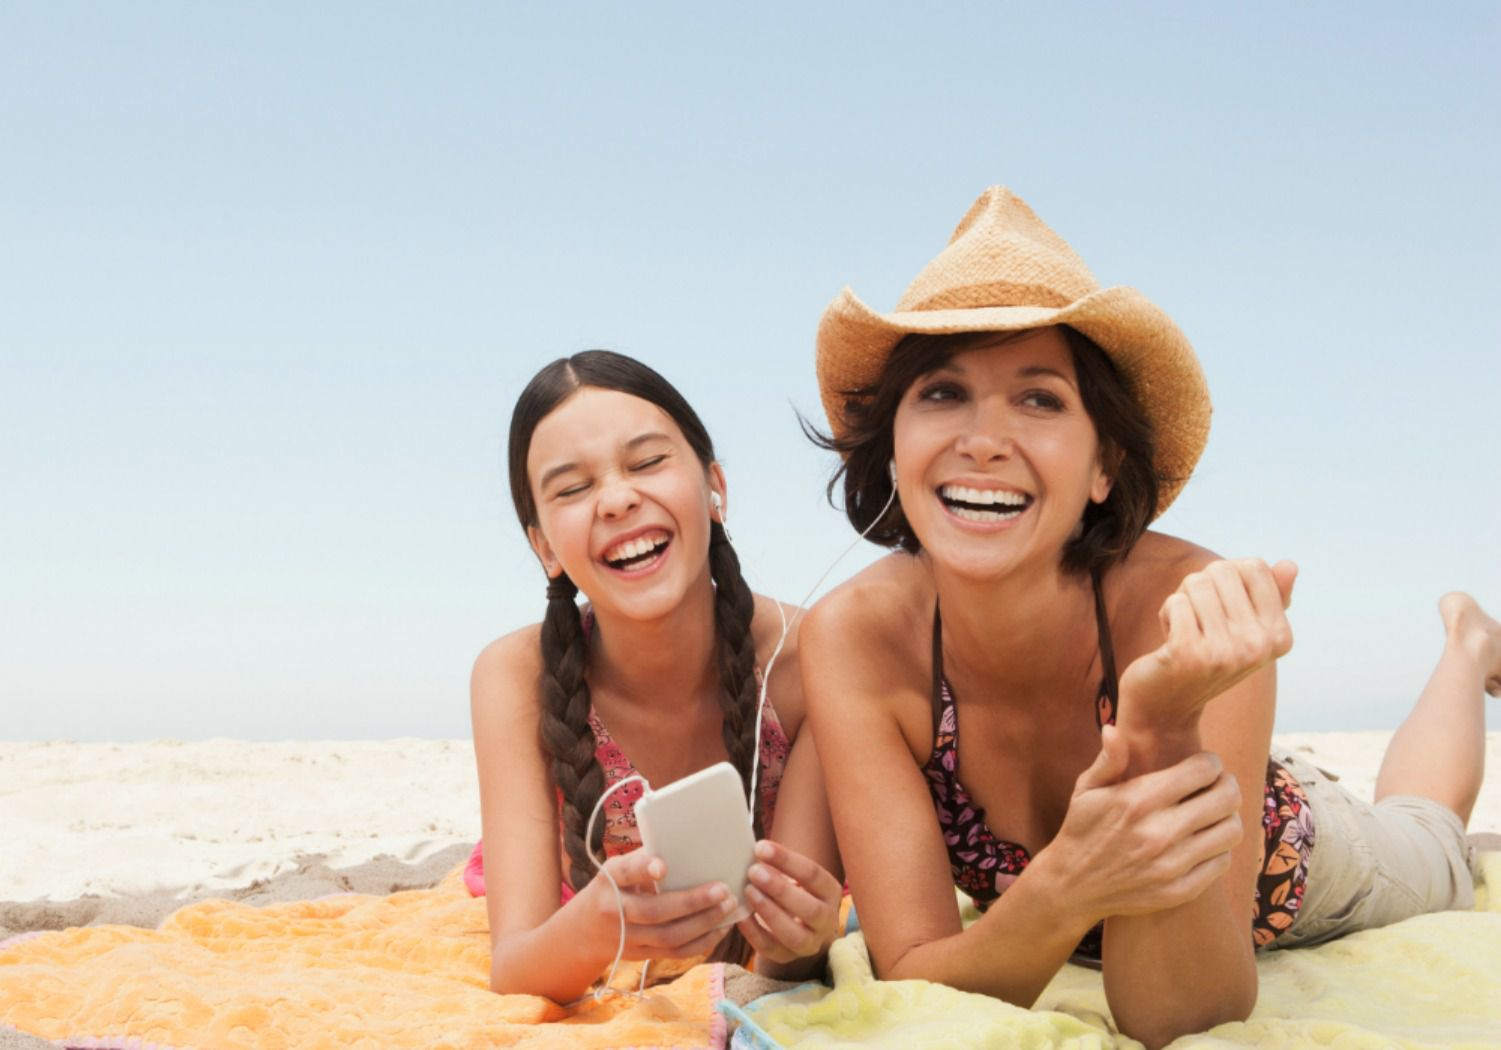 Essential apps for family beach vacations